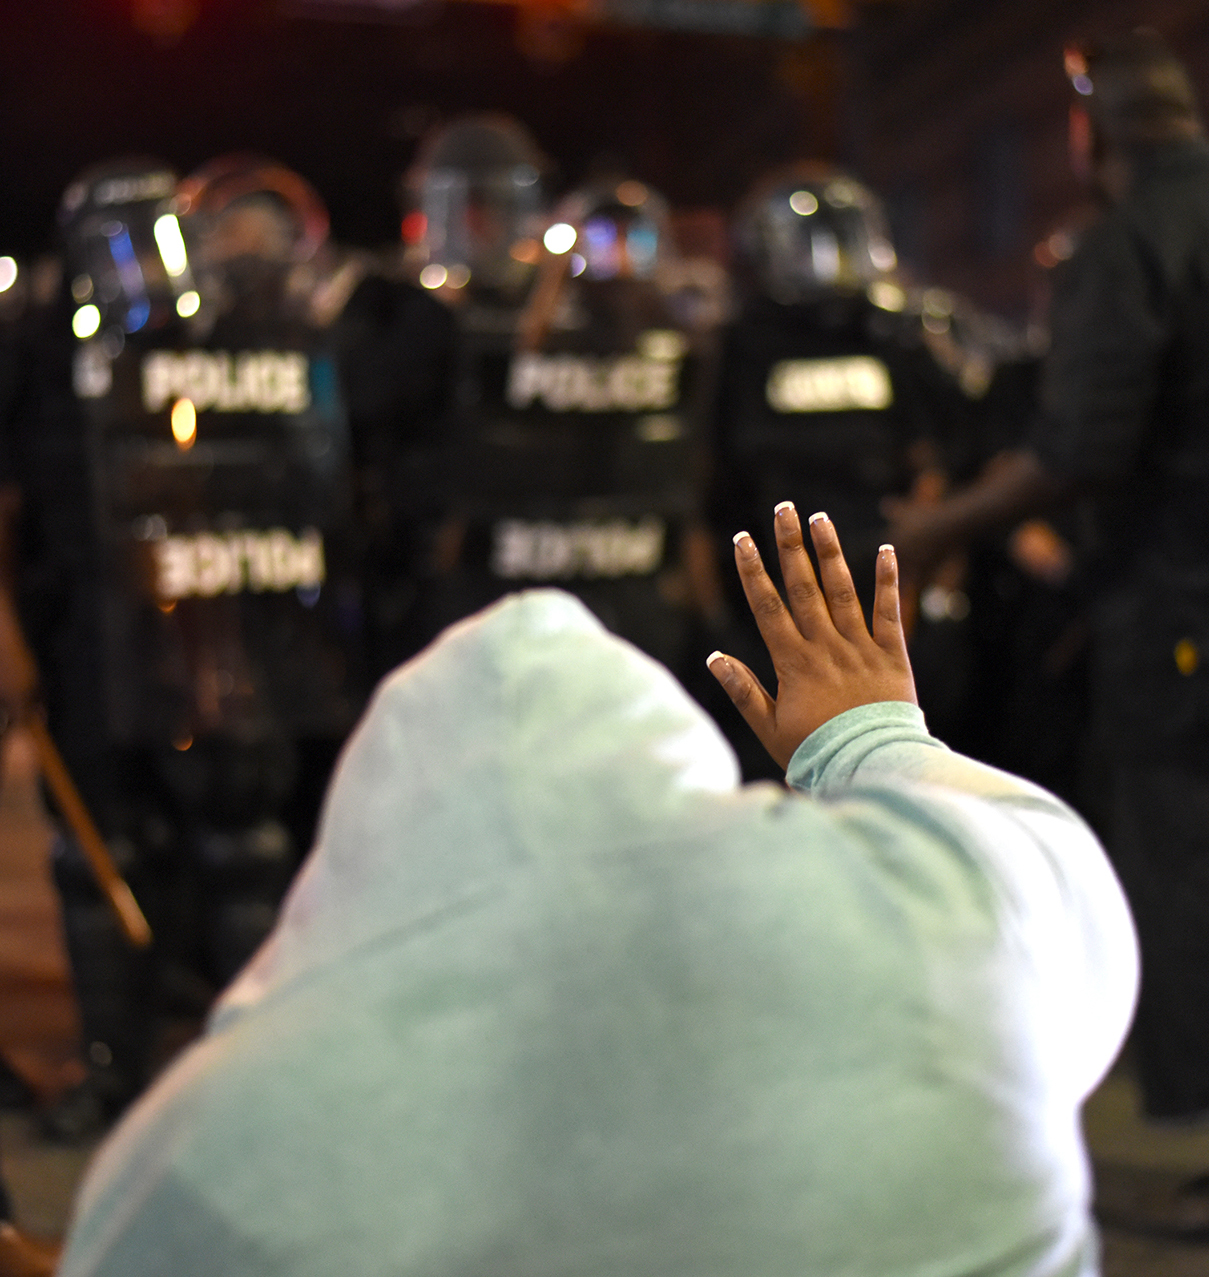 A protestor holds up her hand in front of riot police officers in Charlotte, North Carolina, USA, 21 September 2016. North Carolina governor Pat McCrory declared a state of emergency after protesters took to the streets of Charlotte, North Carolina, for the second consecutive night to demonstrate against the fatal shooting of African-American Keith Lamont Scott by police officers.